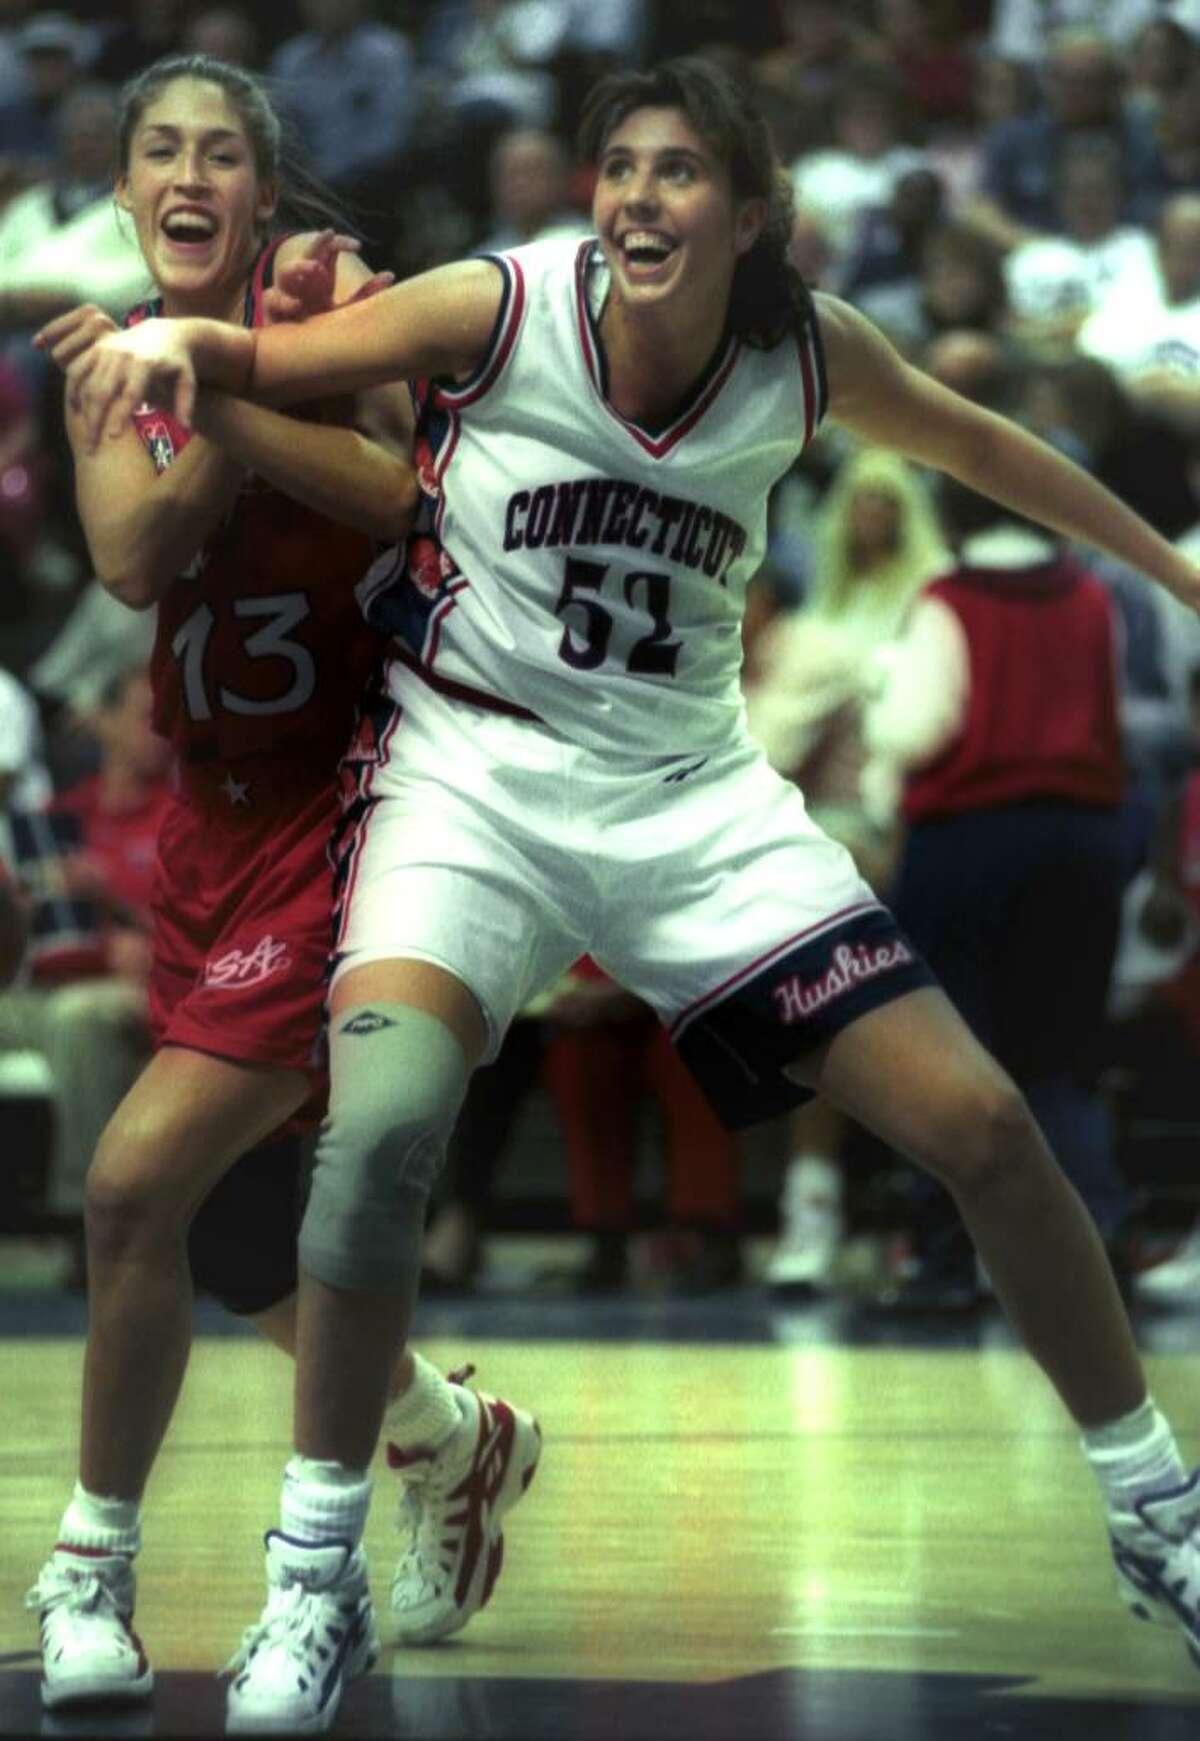 University of Connecticut basketball player Kara Wolter in action against former teammate Rebecca Lobo, member of the U.S. Olympic team, date and location unknown.